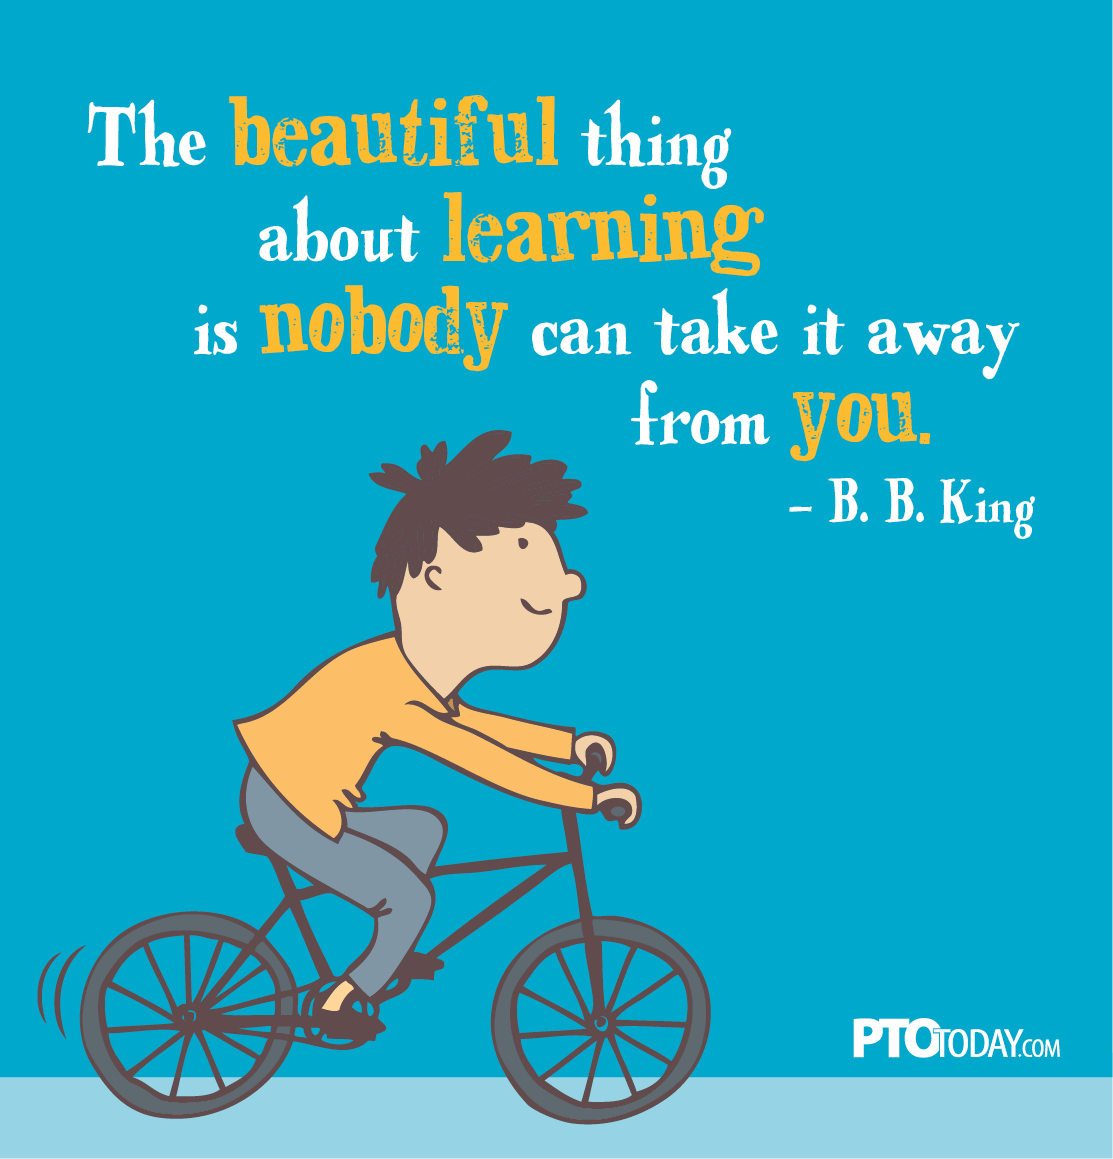 The beautiful thing about learning